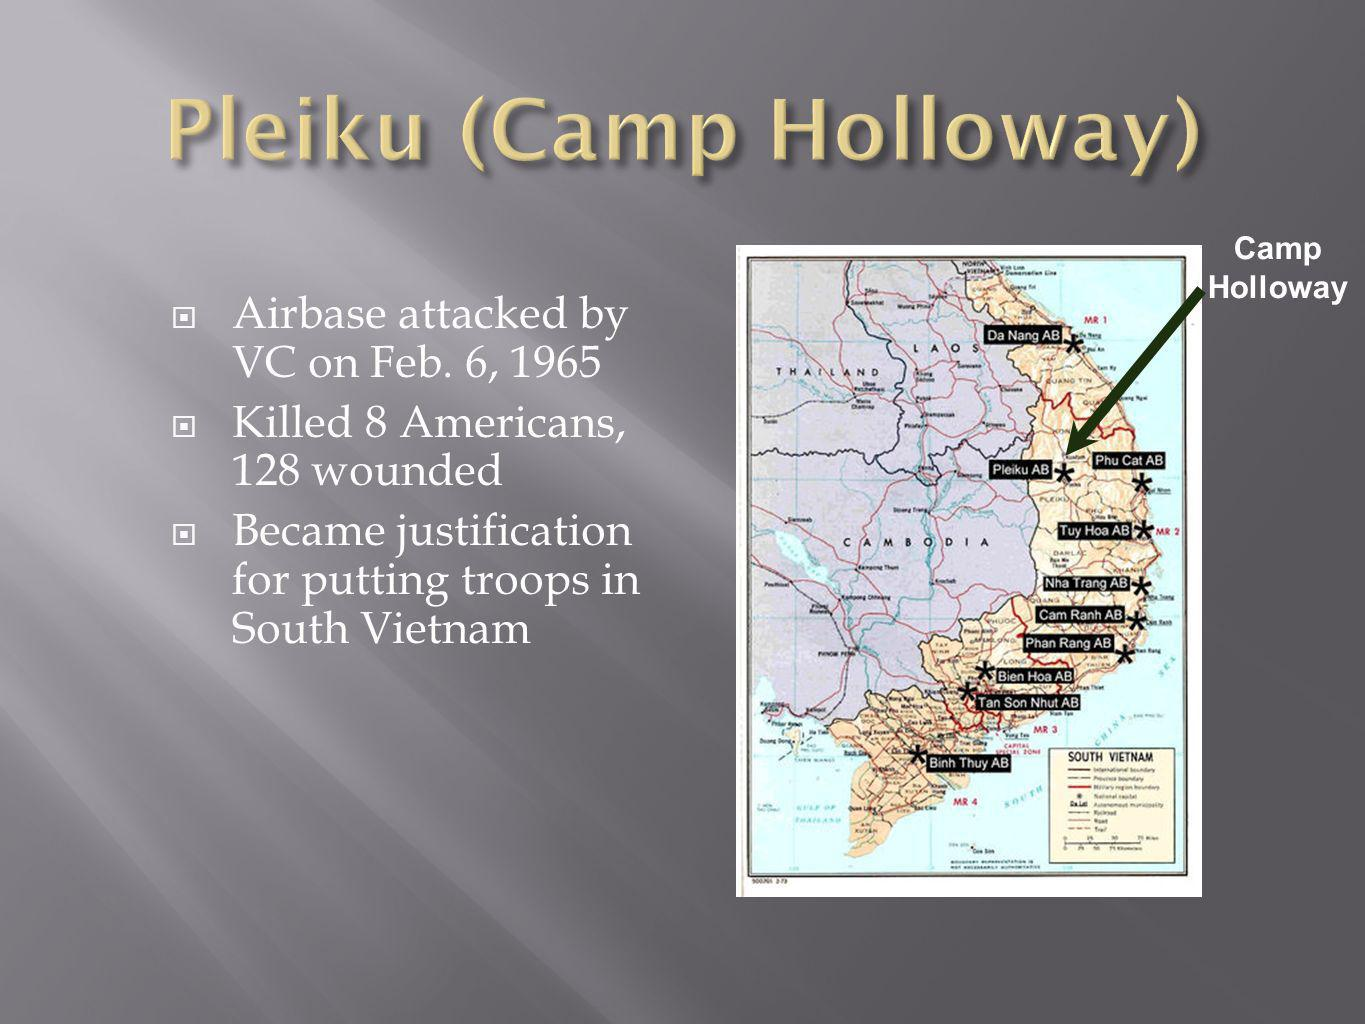 Airbase attacked by VC on Feb. 6, 1965 Killed 8 Americans, 128 wounded Became justification for putting troops in South Vietnam Camp Holloway